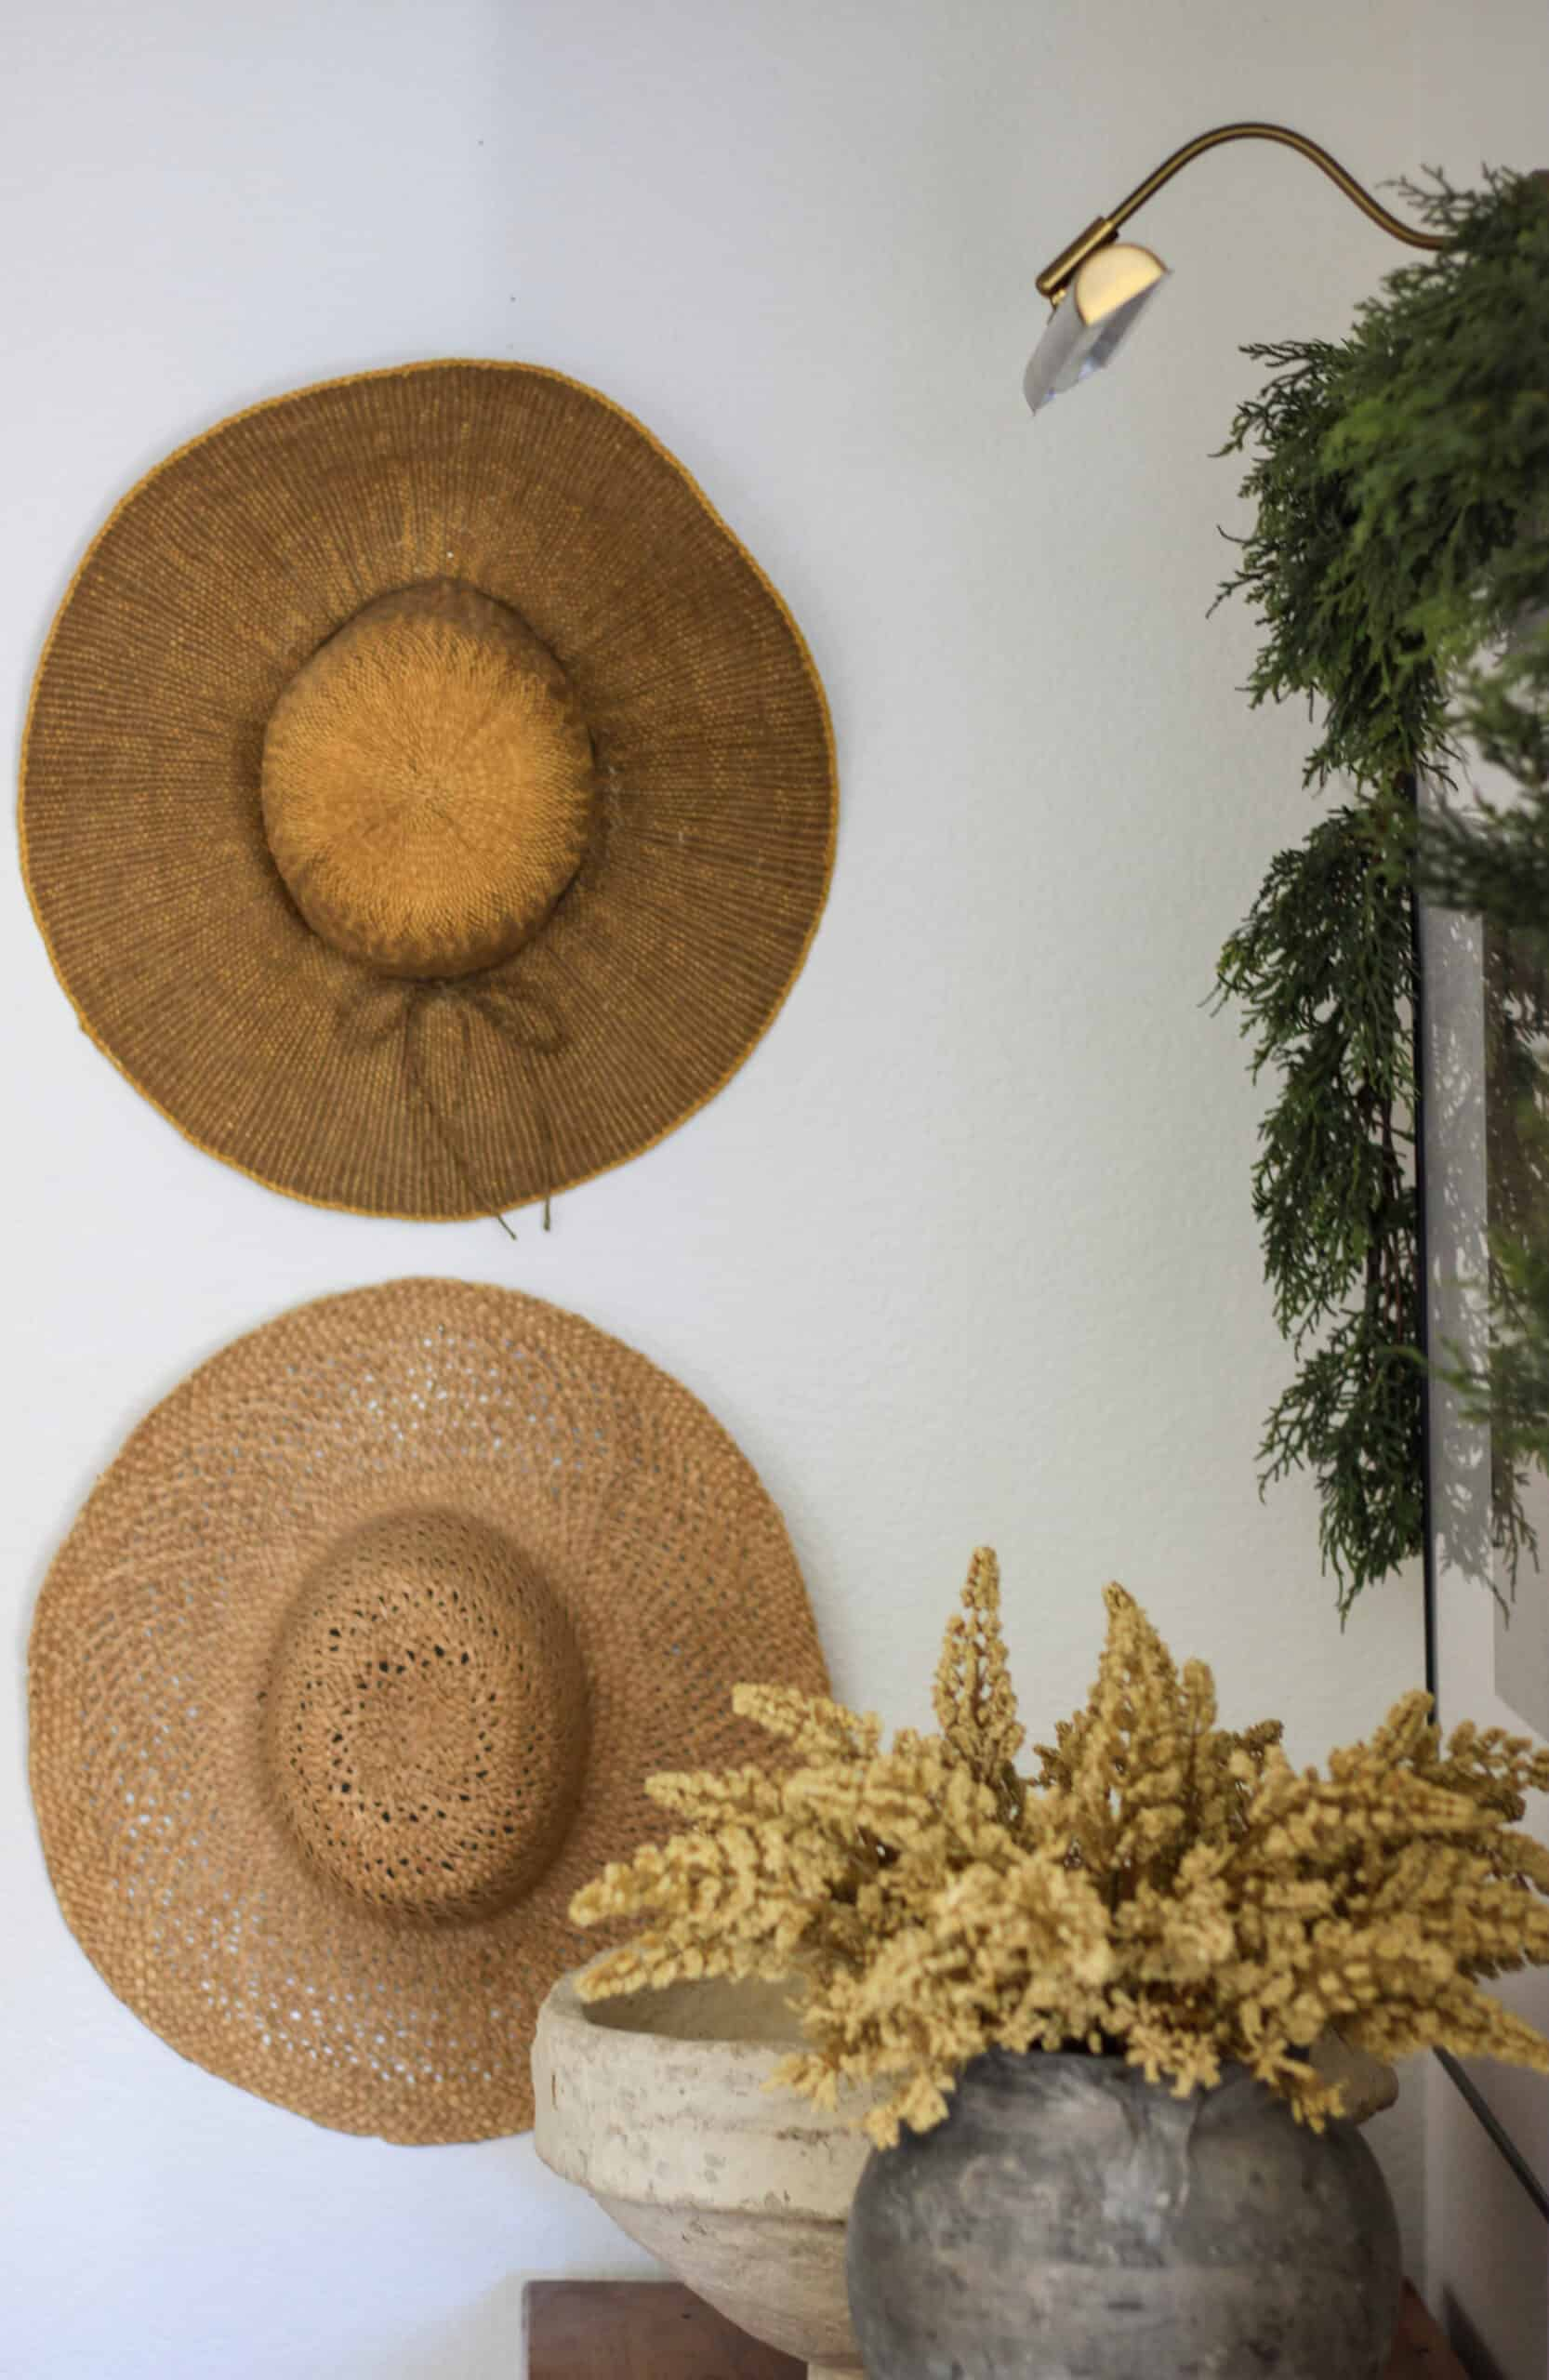 close up of hats on wall and vase of ochre stems